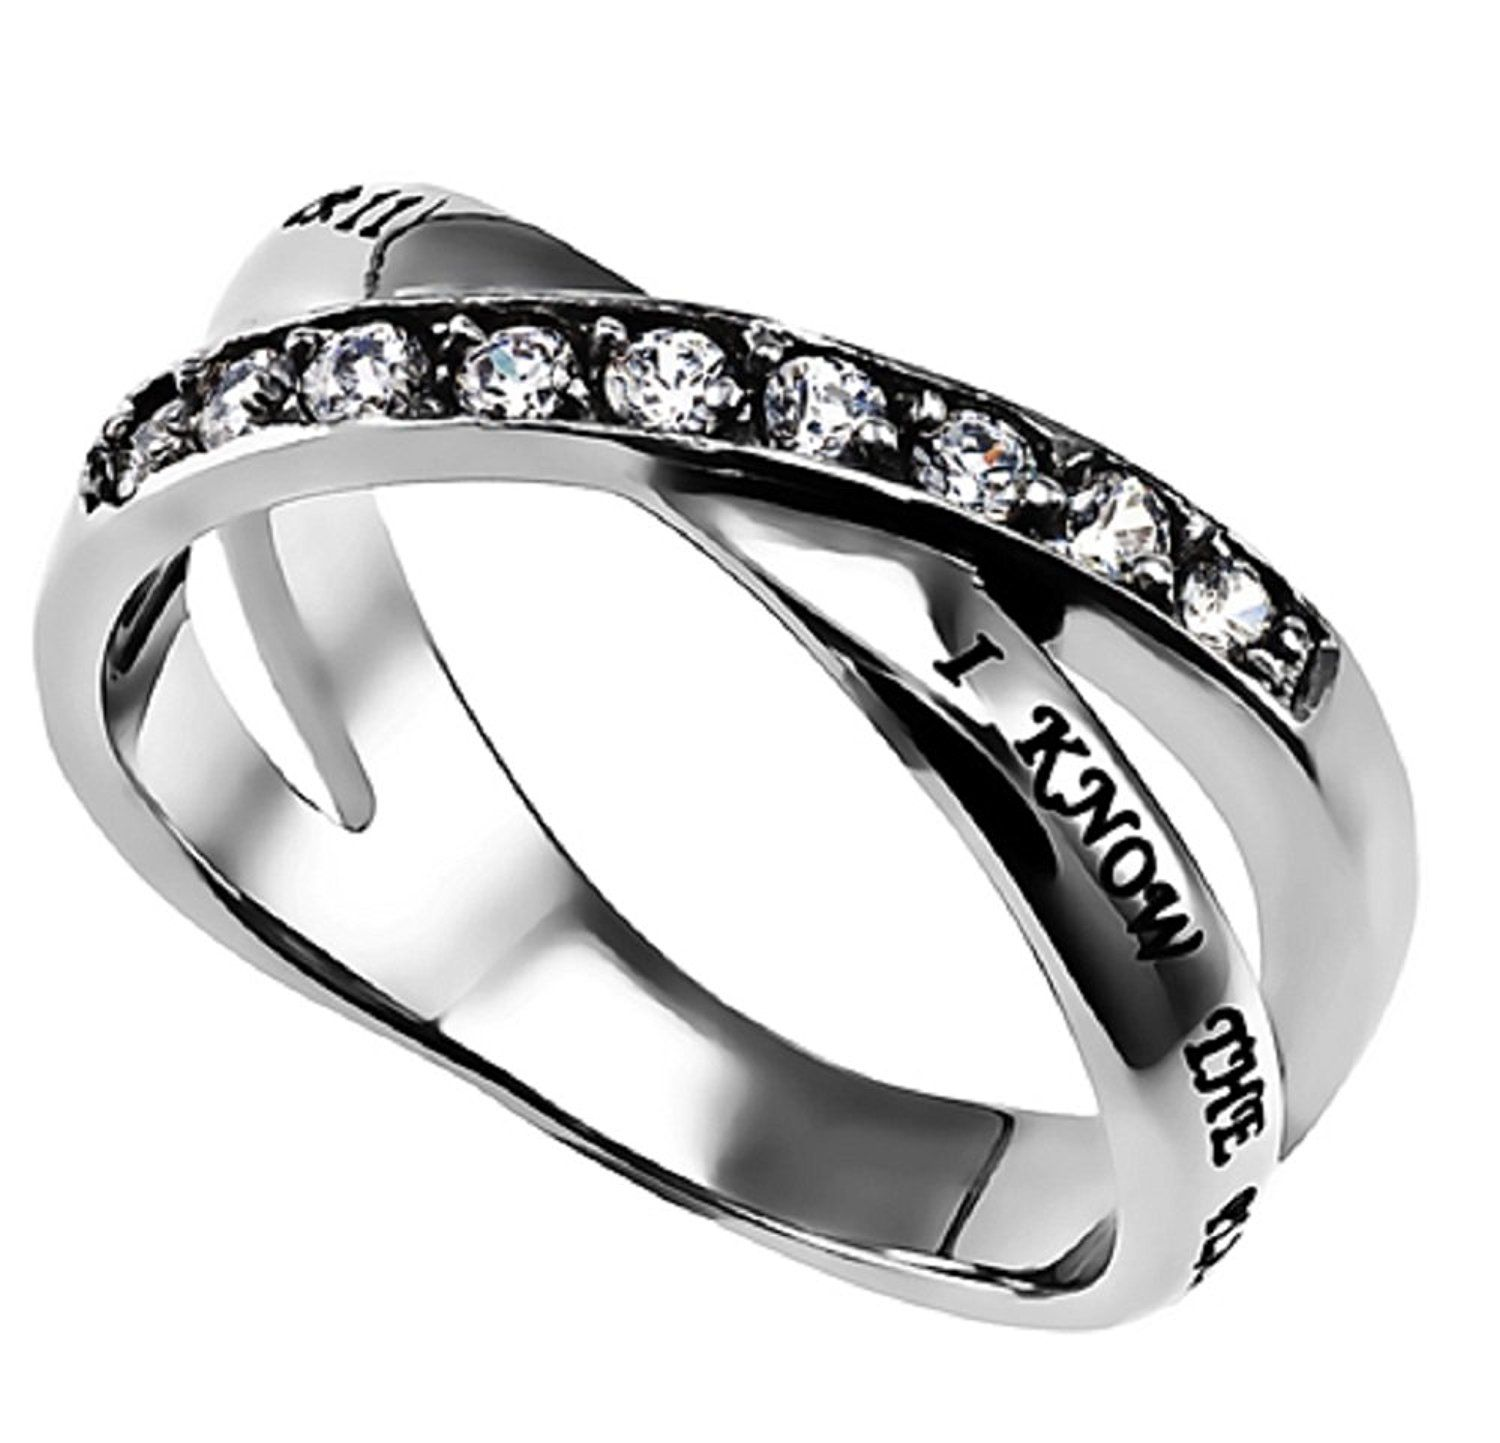 I Know The Plans Radiance Ring Silver Stainless Steel With Verse